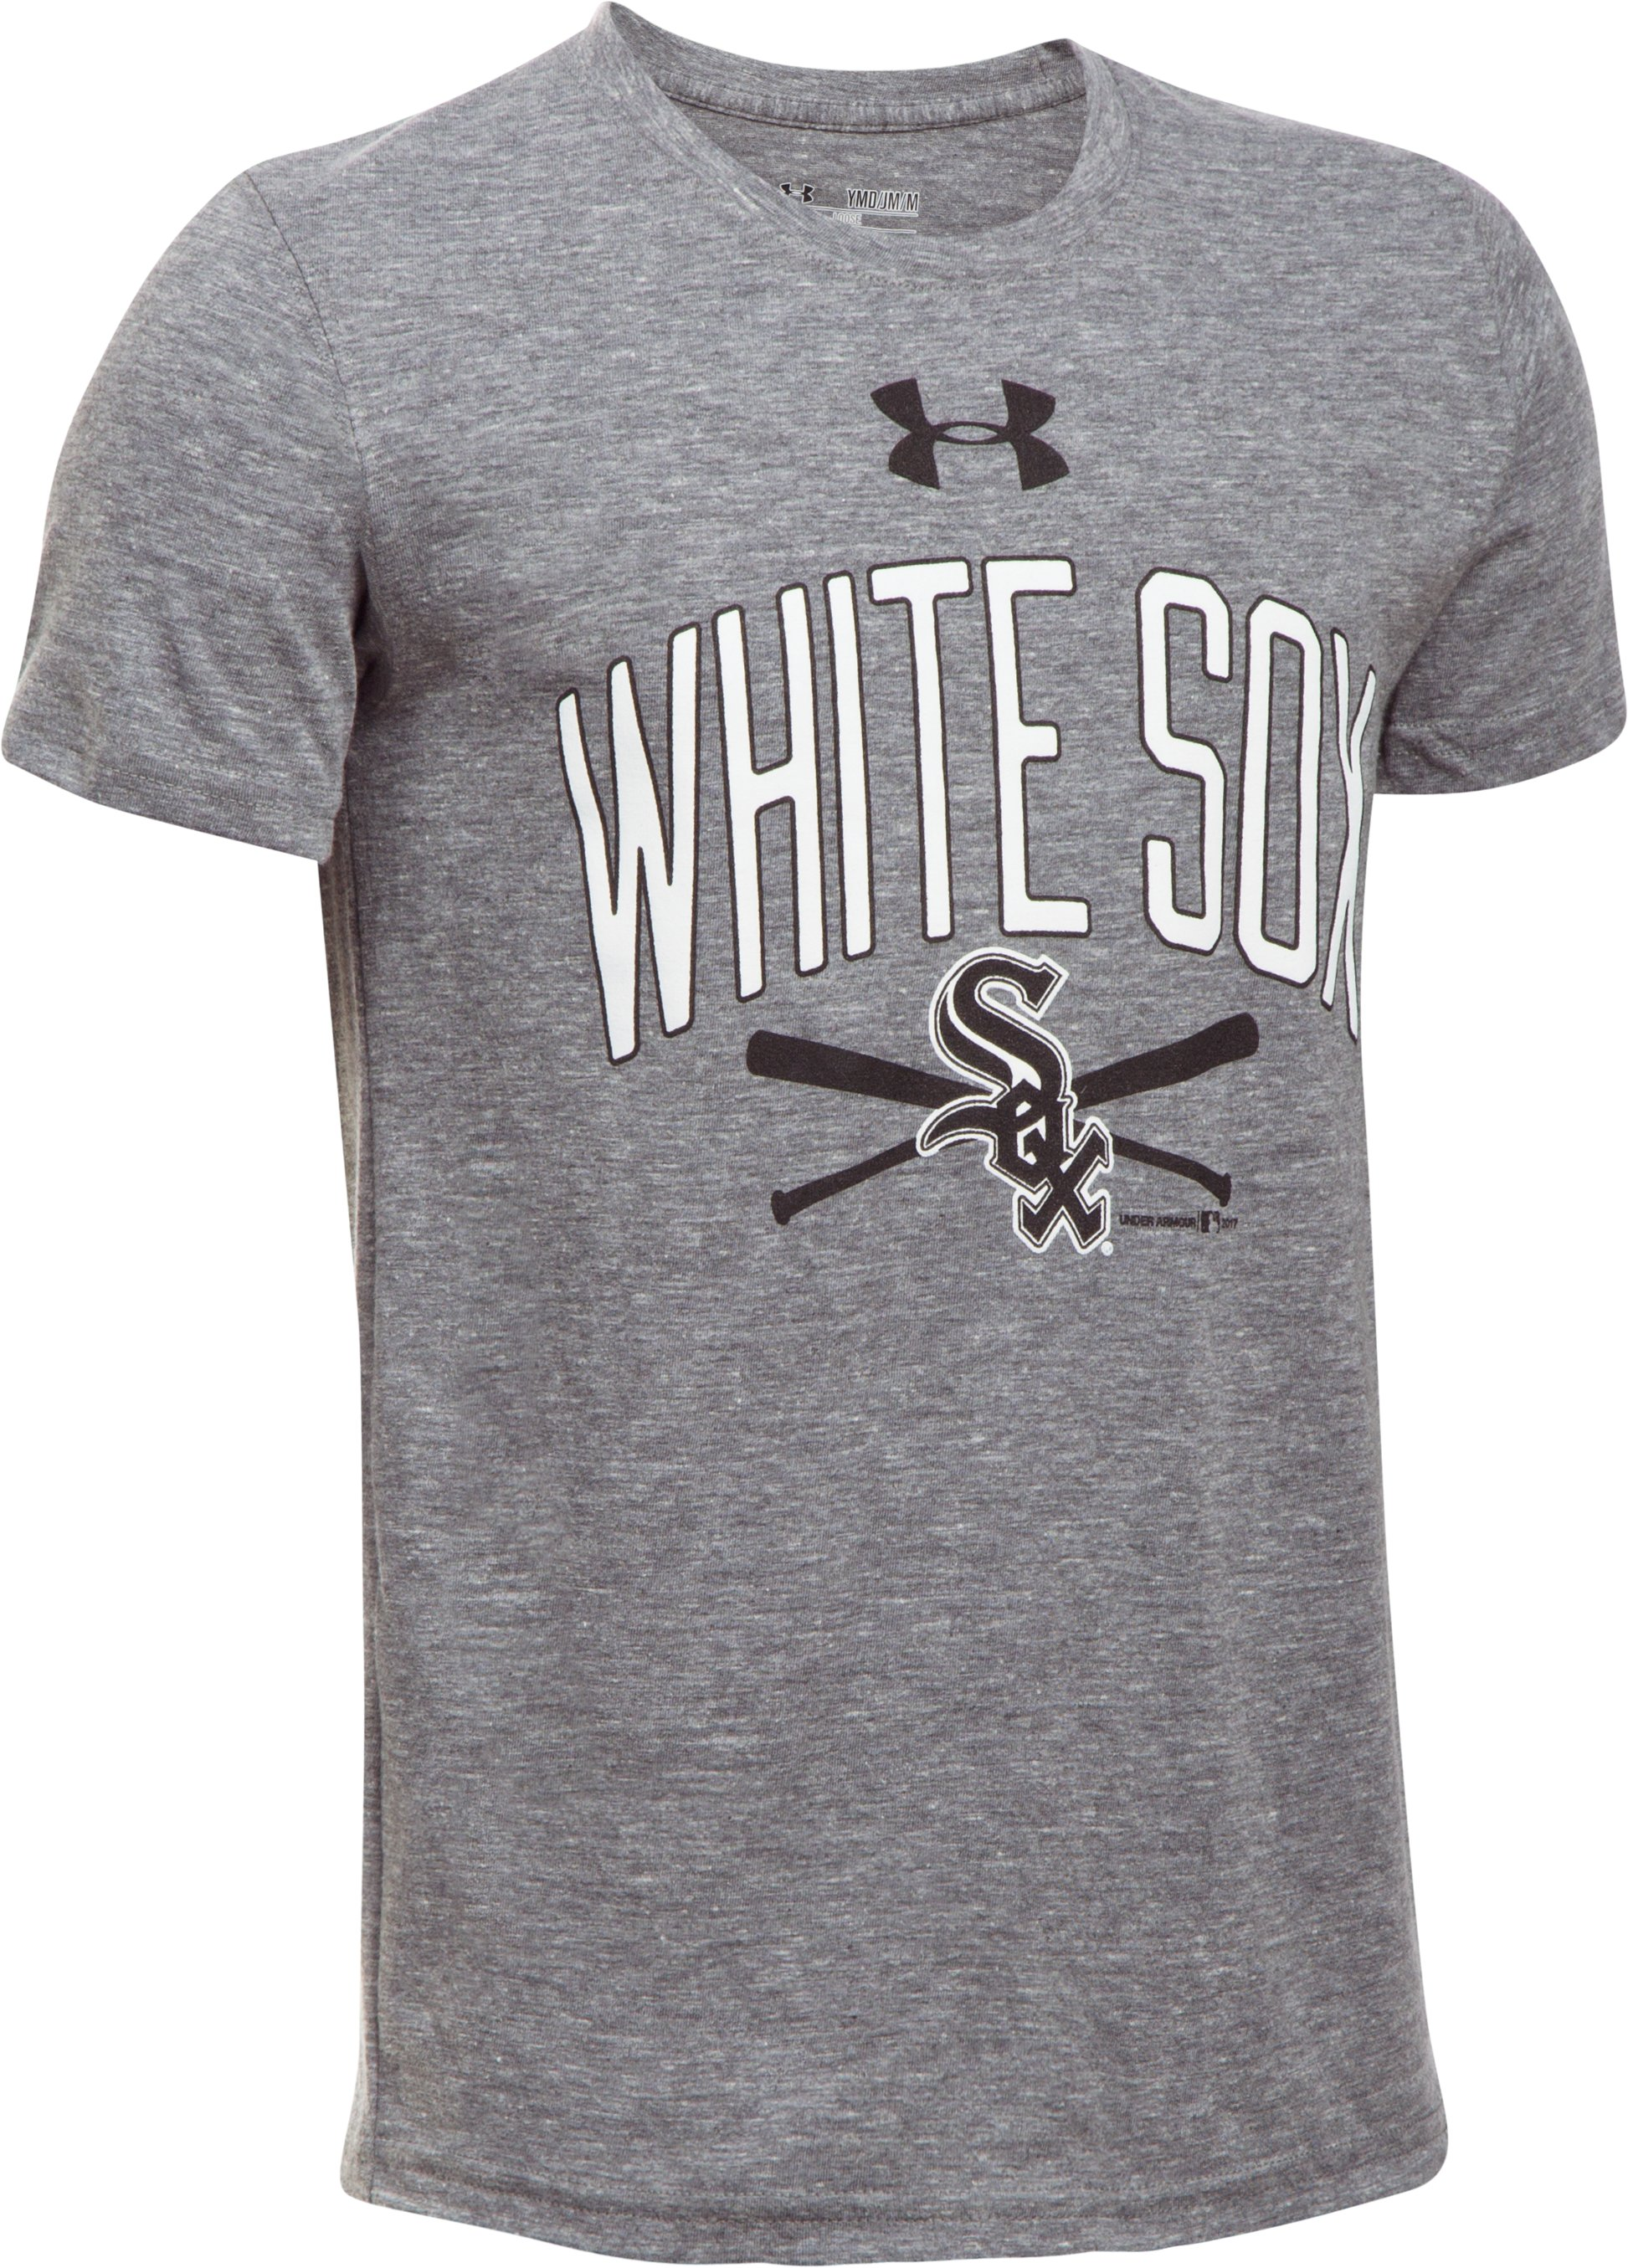 Boys' Chicago White Sox Tri-Blend T-Shirt, True Gray Heather